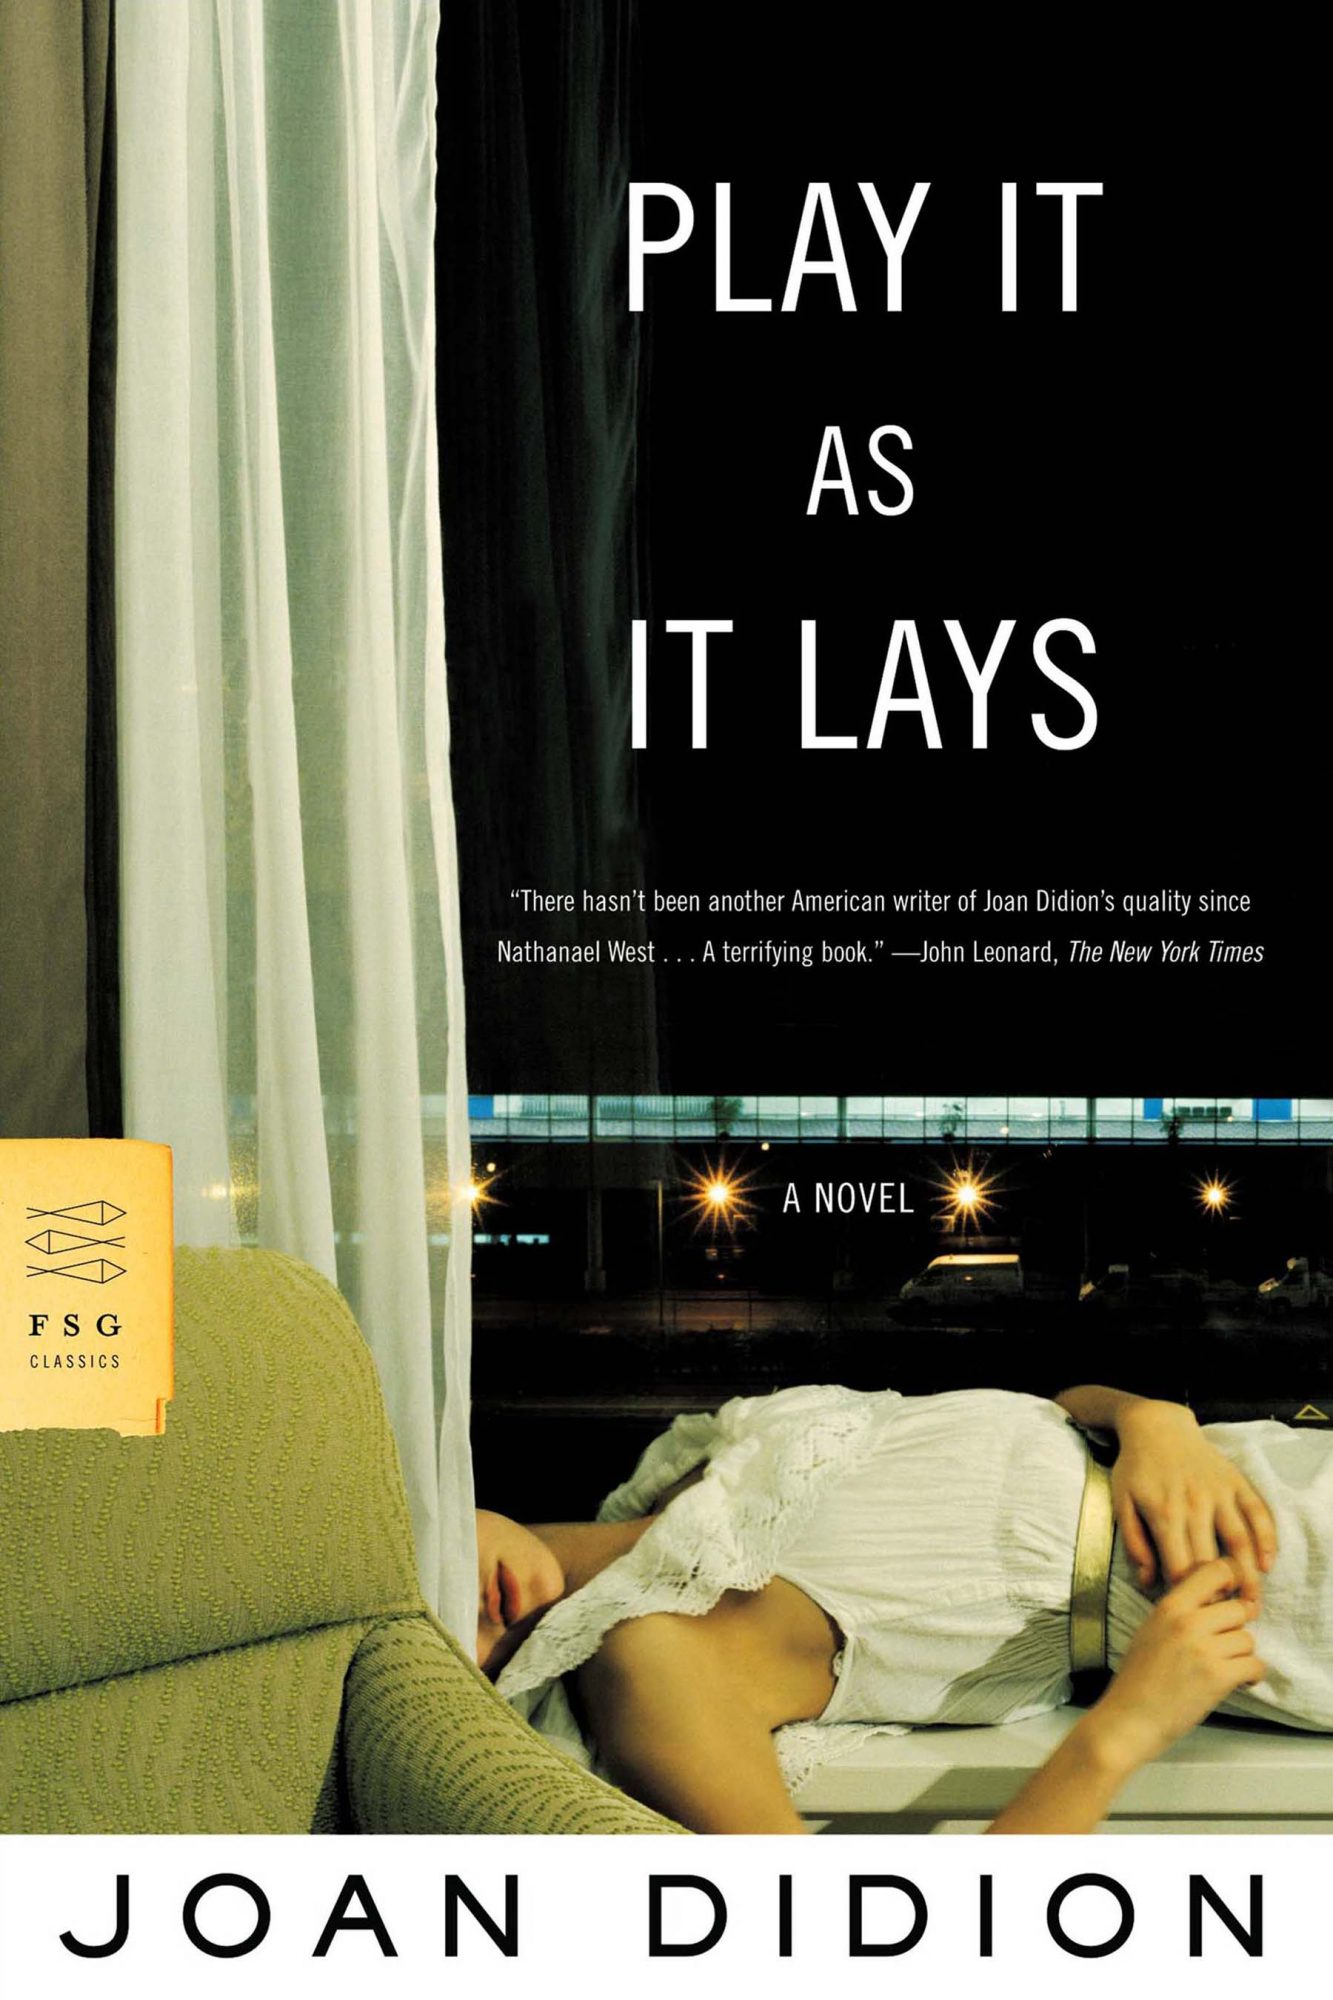 Play as It Lays, by Joan Didion